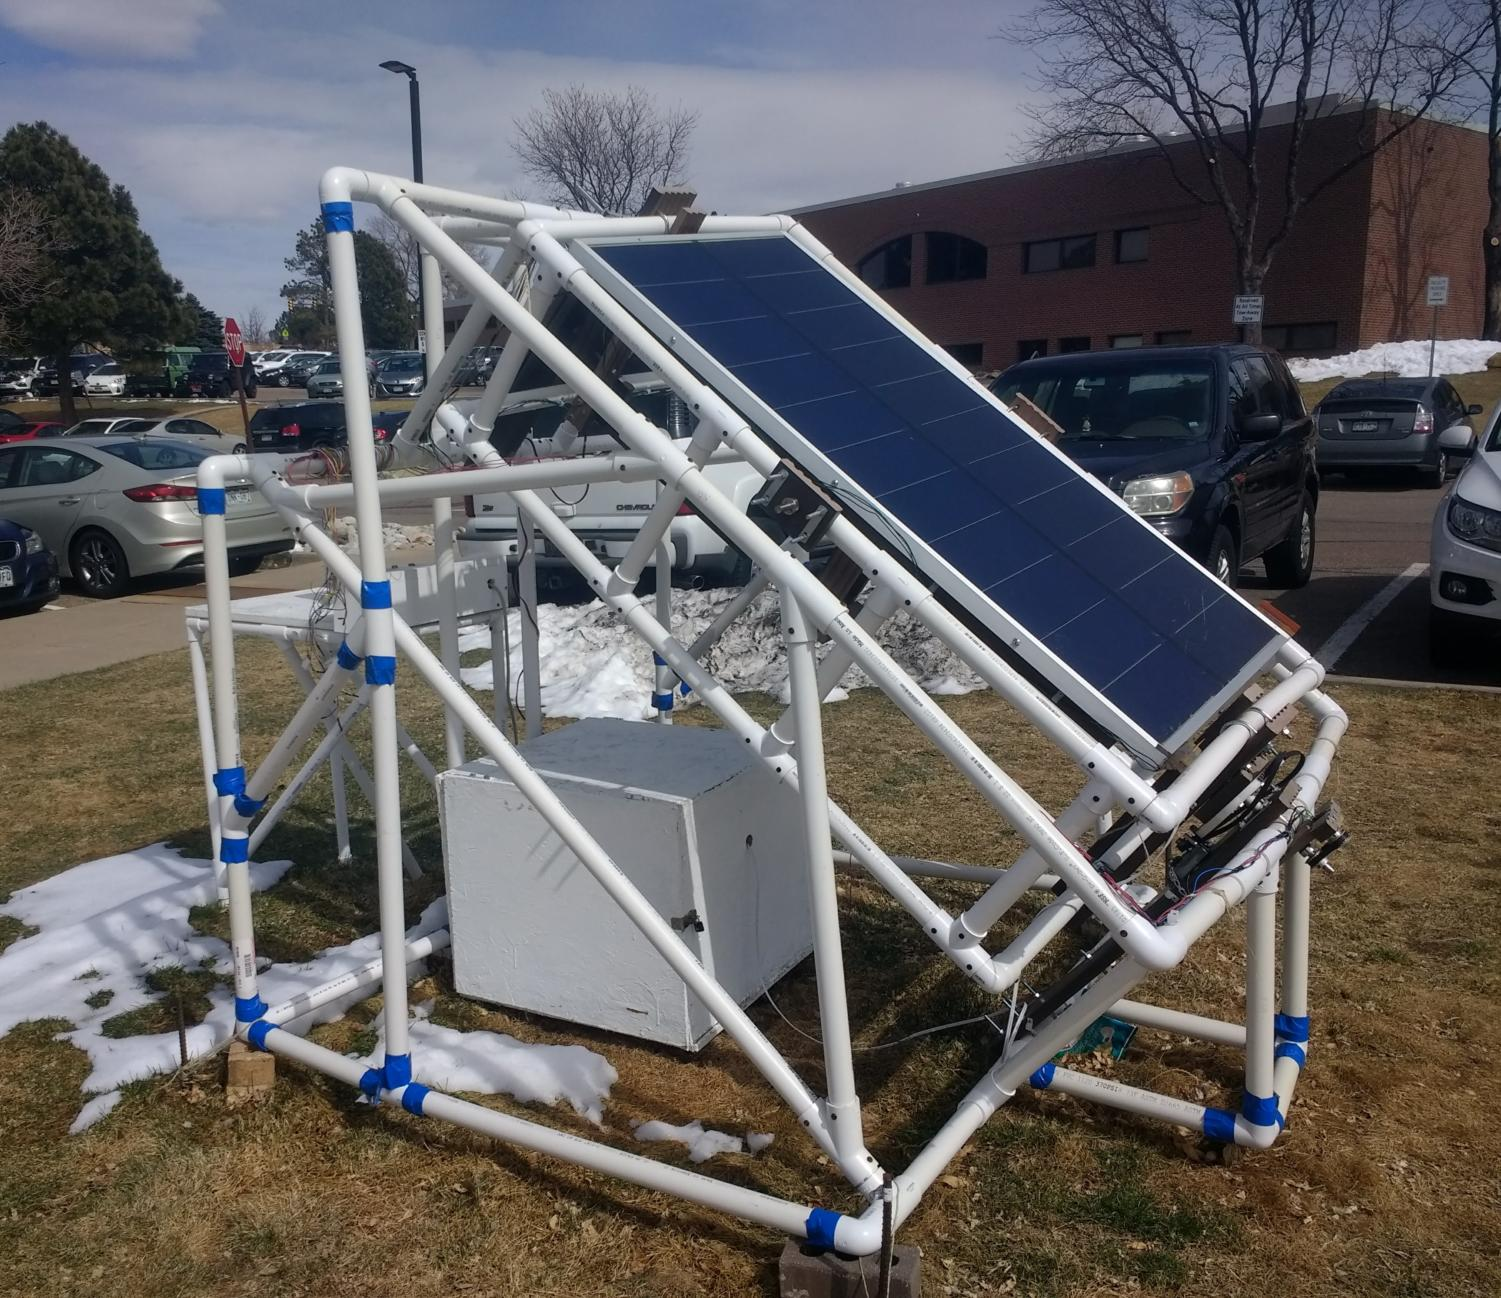 The solar panel will be used as a charging station for phones.